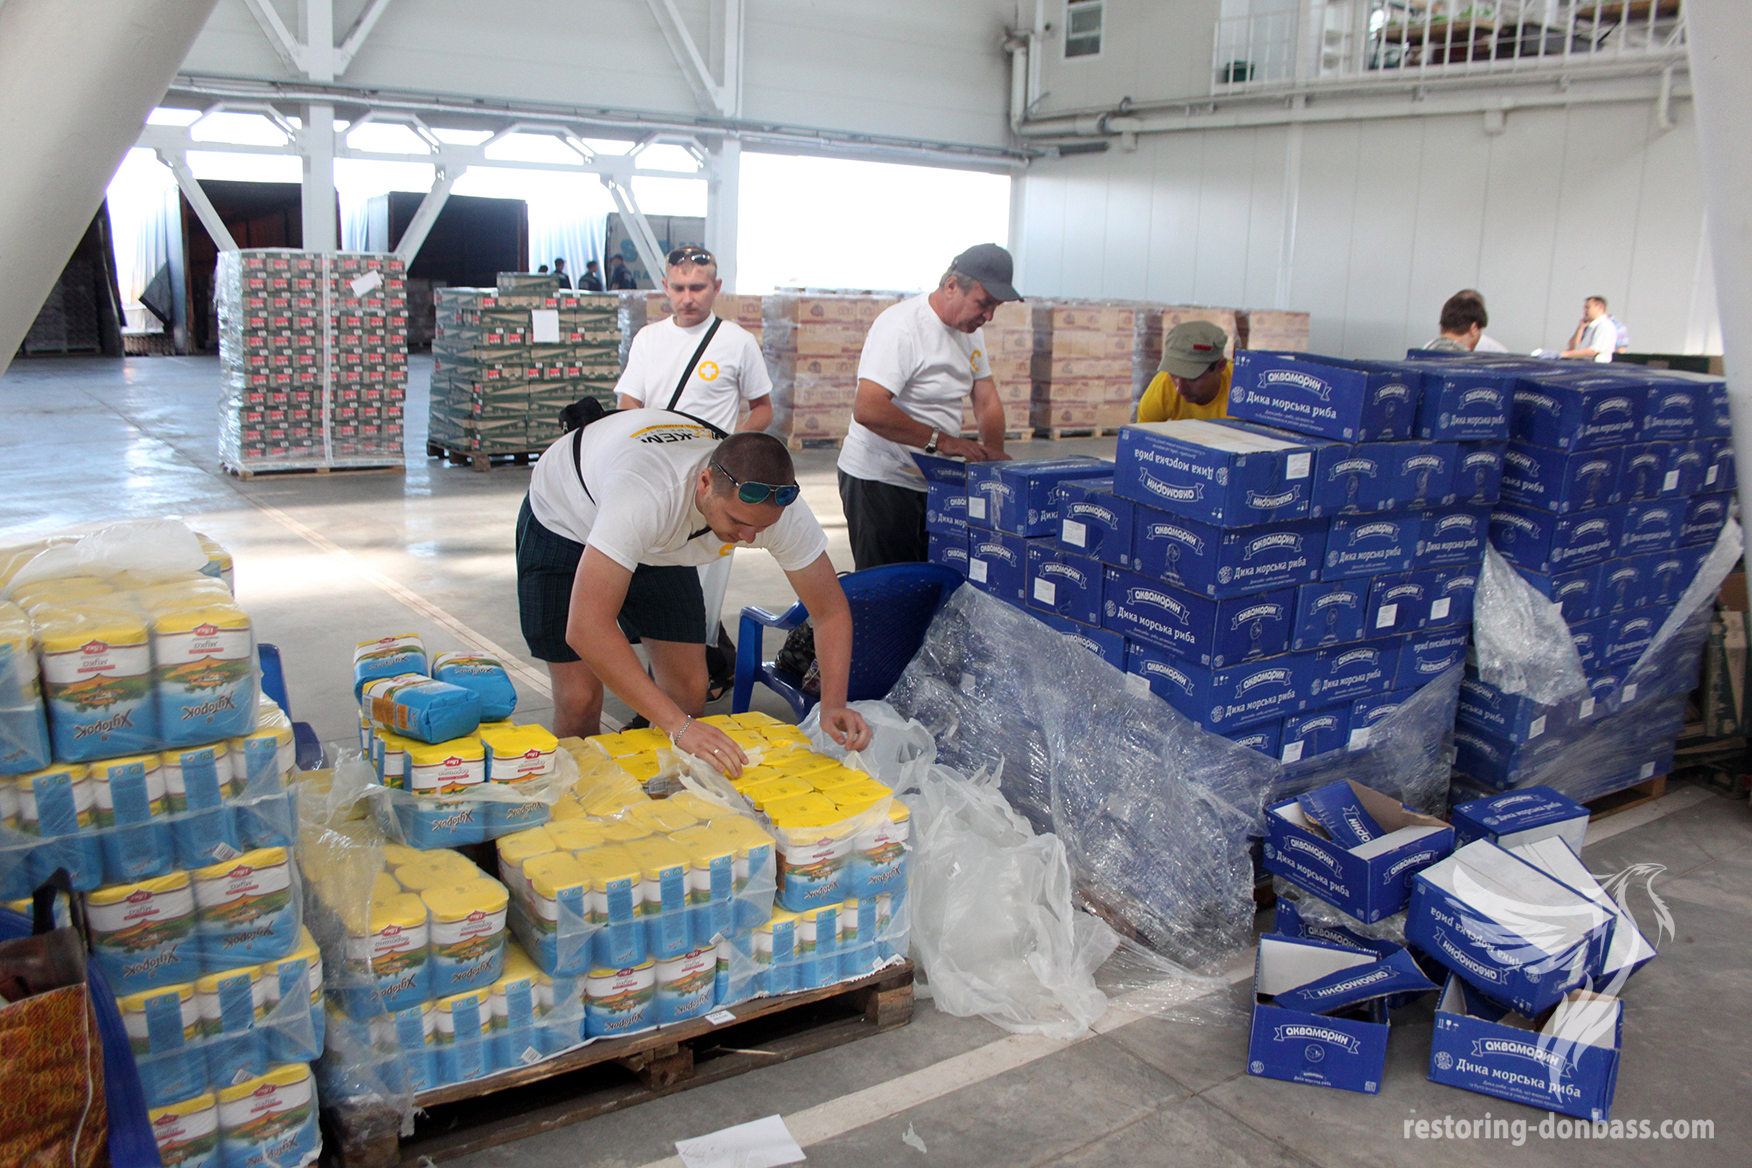 Formation of humanitarian aid for Donbas residents, August 28, 2014